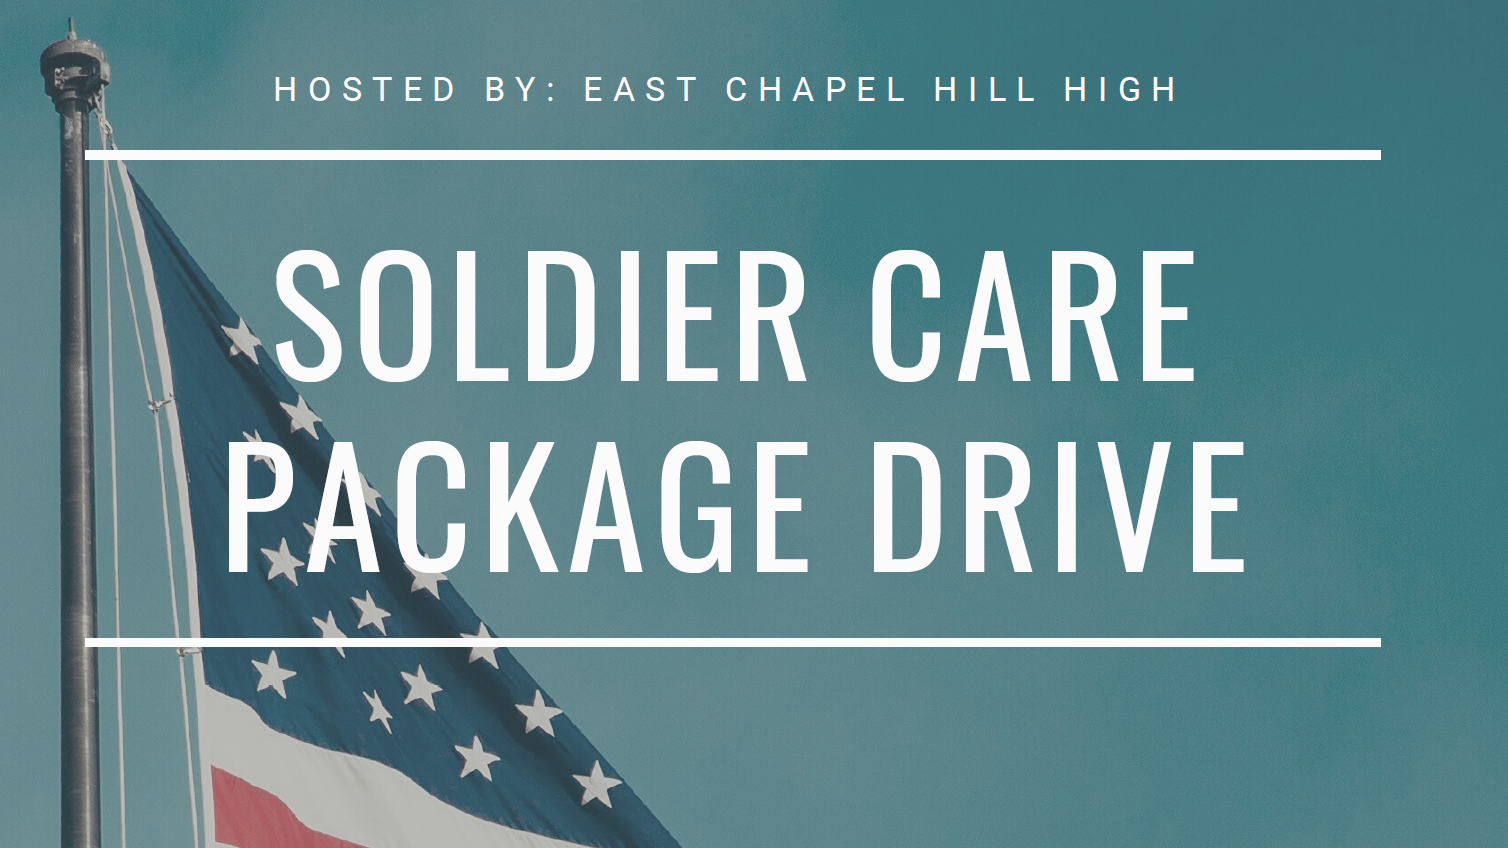 Soldier Care Package Drive